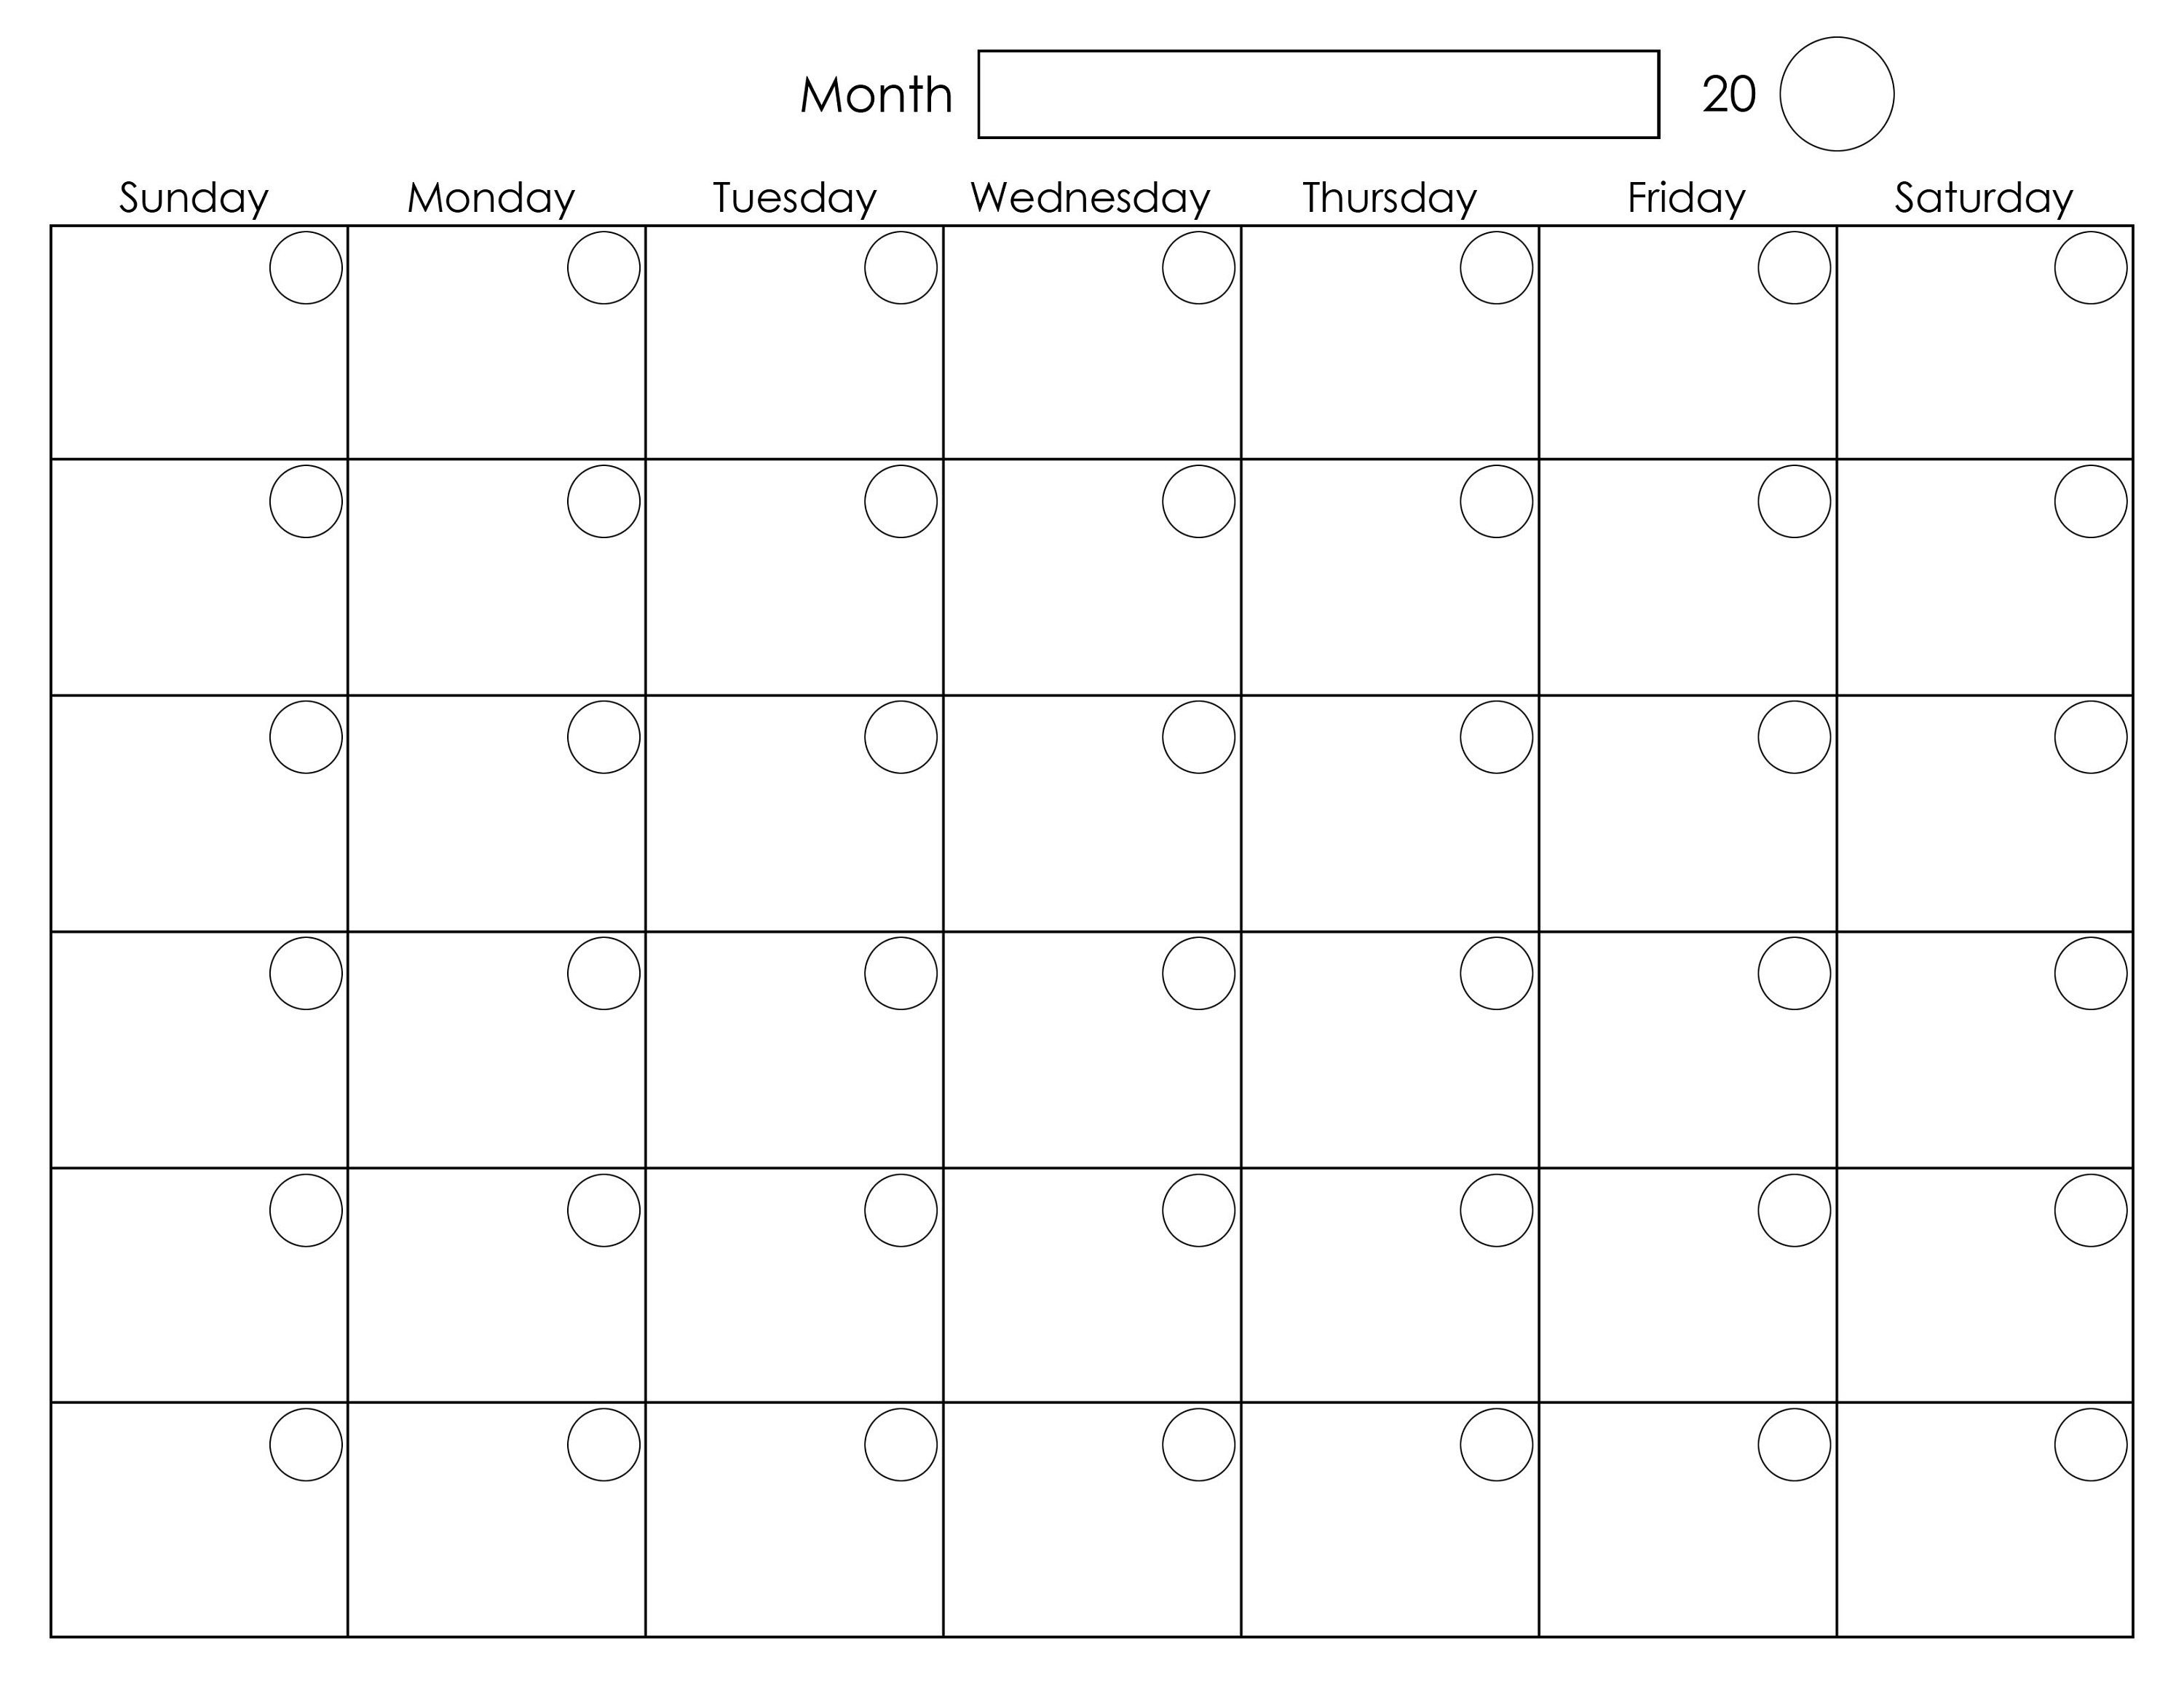 Printable Blank Monthly Calendar | Calendar Template Printable for Printable Blank Schedules Monthly